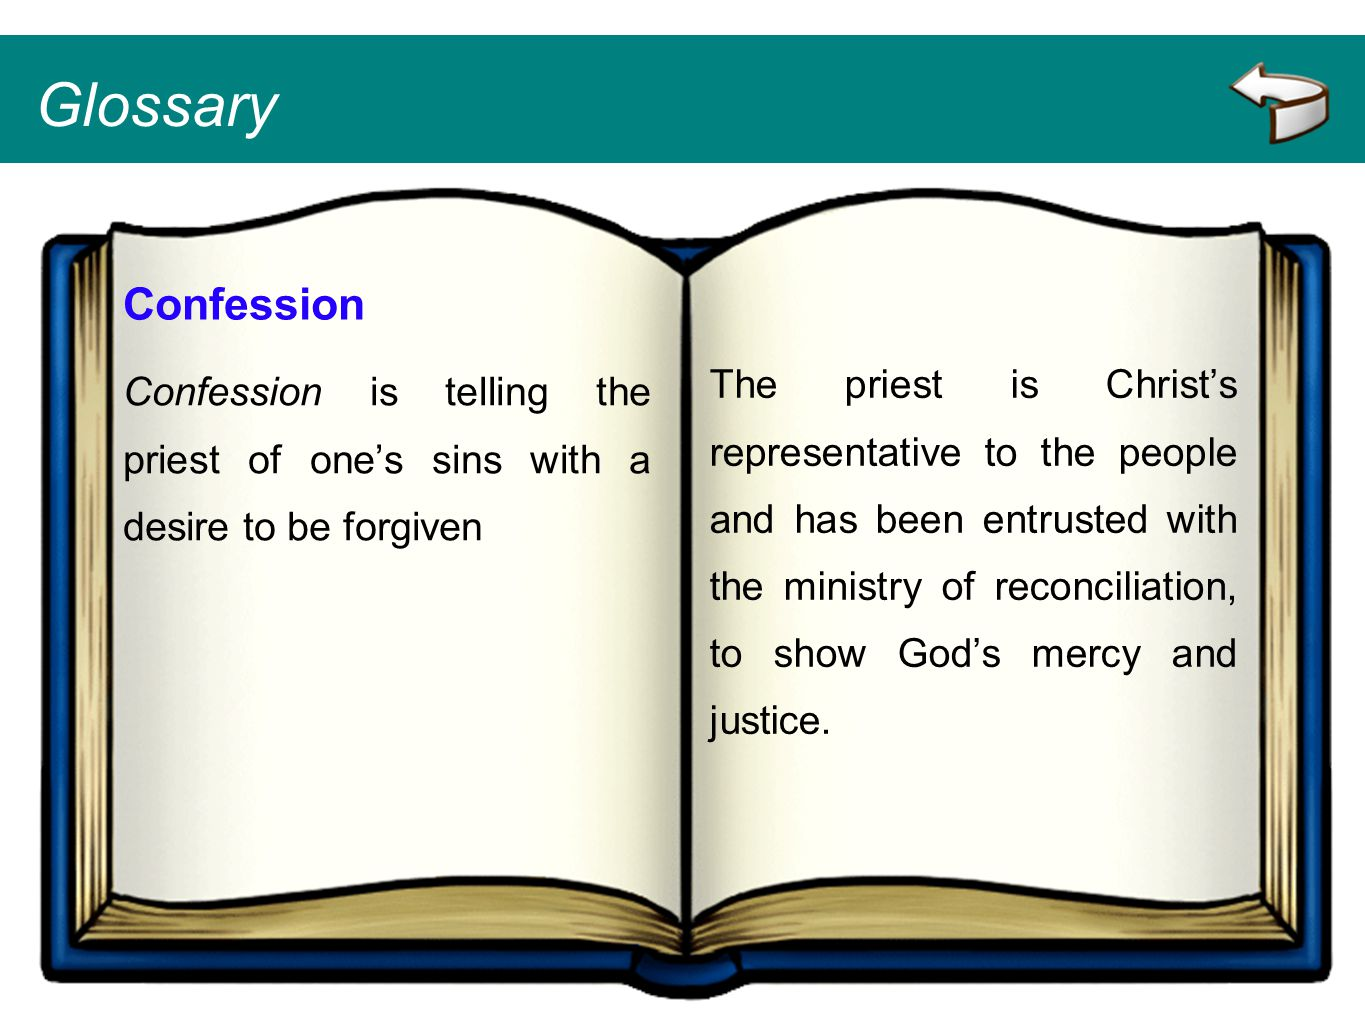 Glossary Confession. Confession is telling the priest of one's sins with a desire to be forgiven.